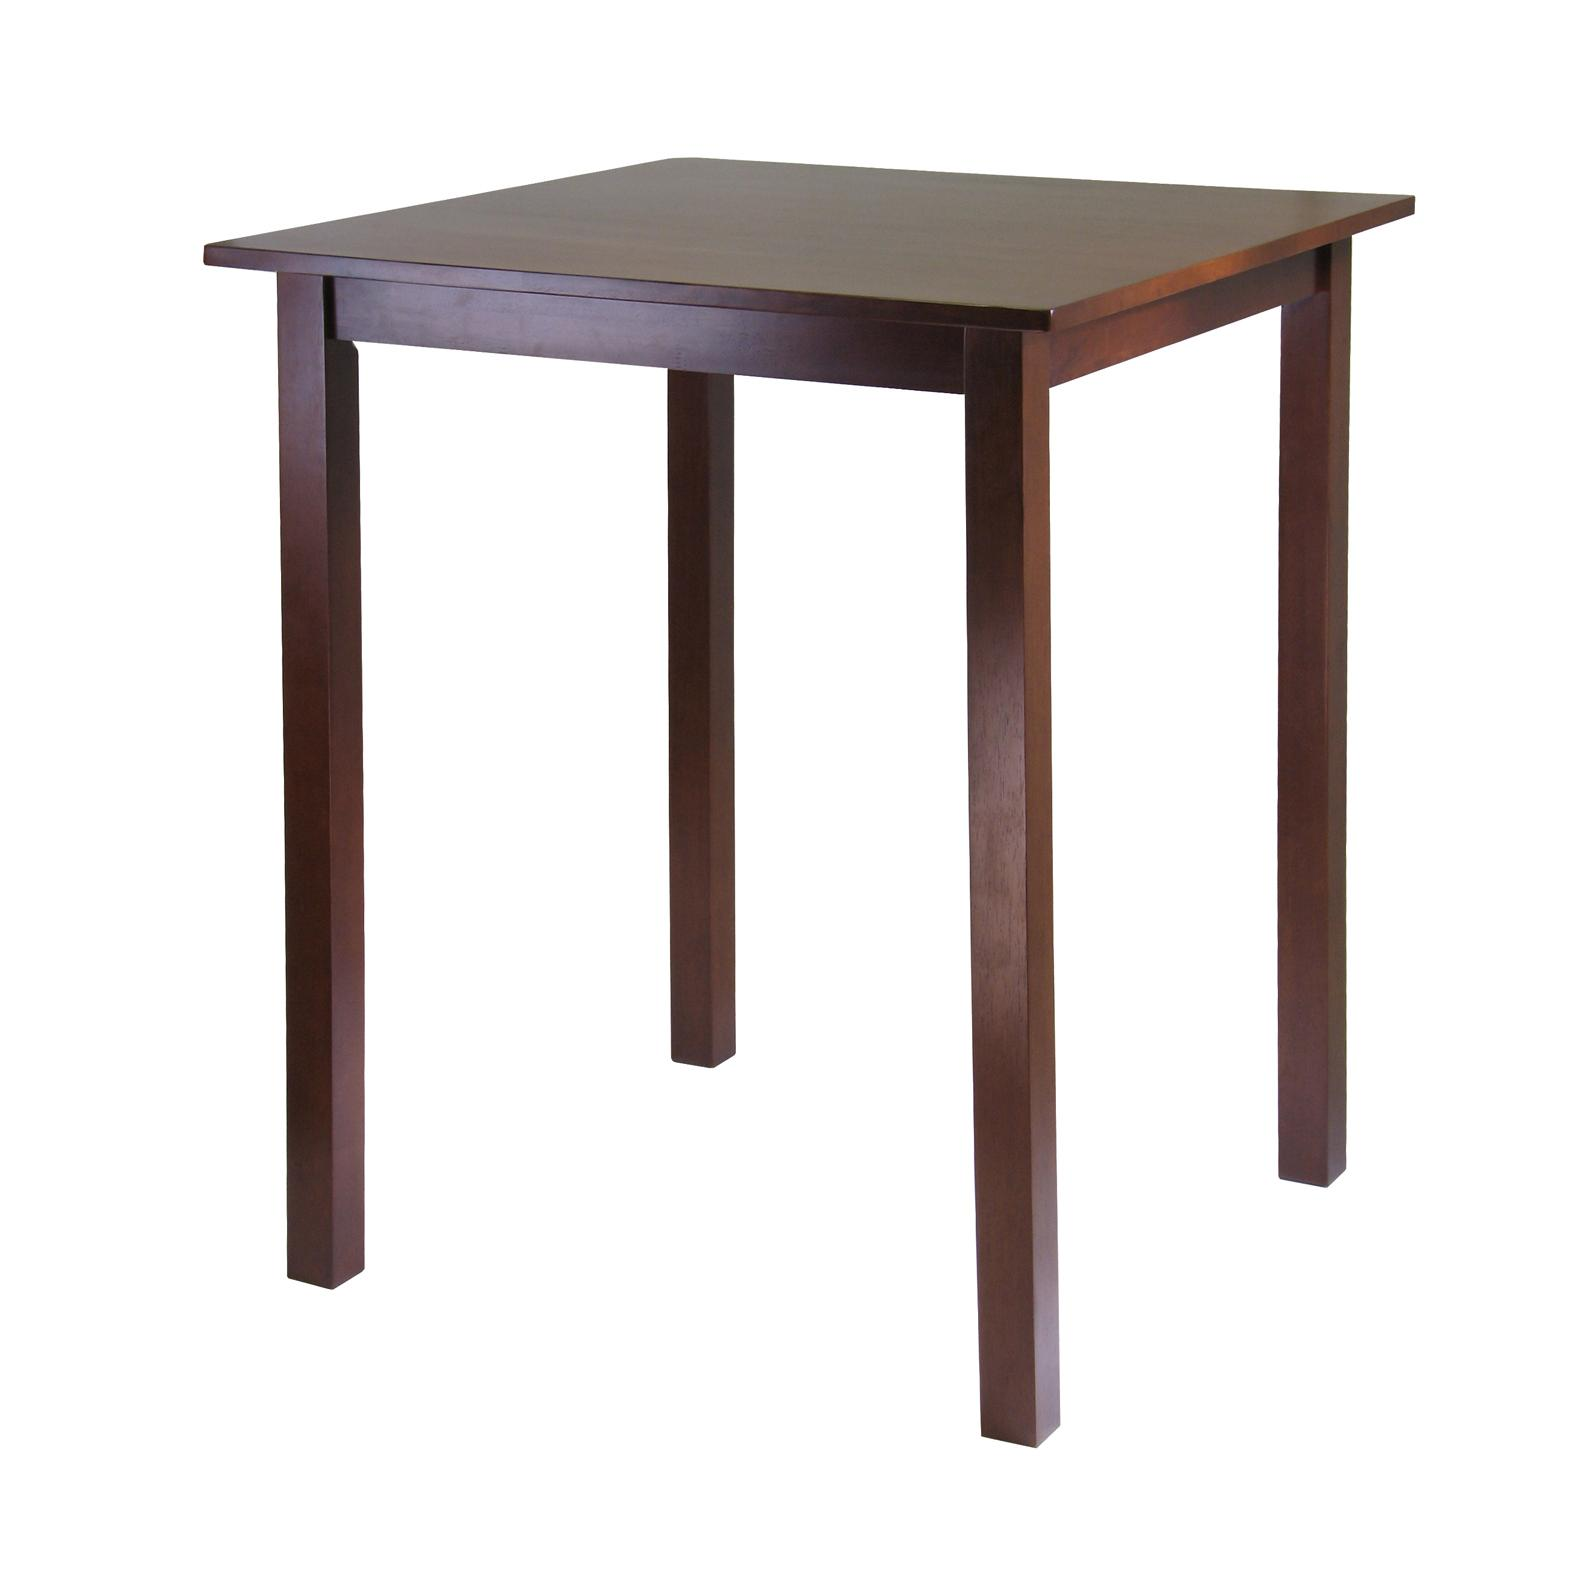 Parkland High Pub Square Table. Amazon com  Winsome Solid Wood Parkland Pub Square Table  Kitchen